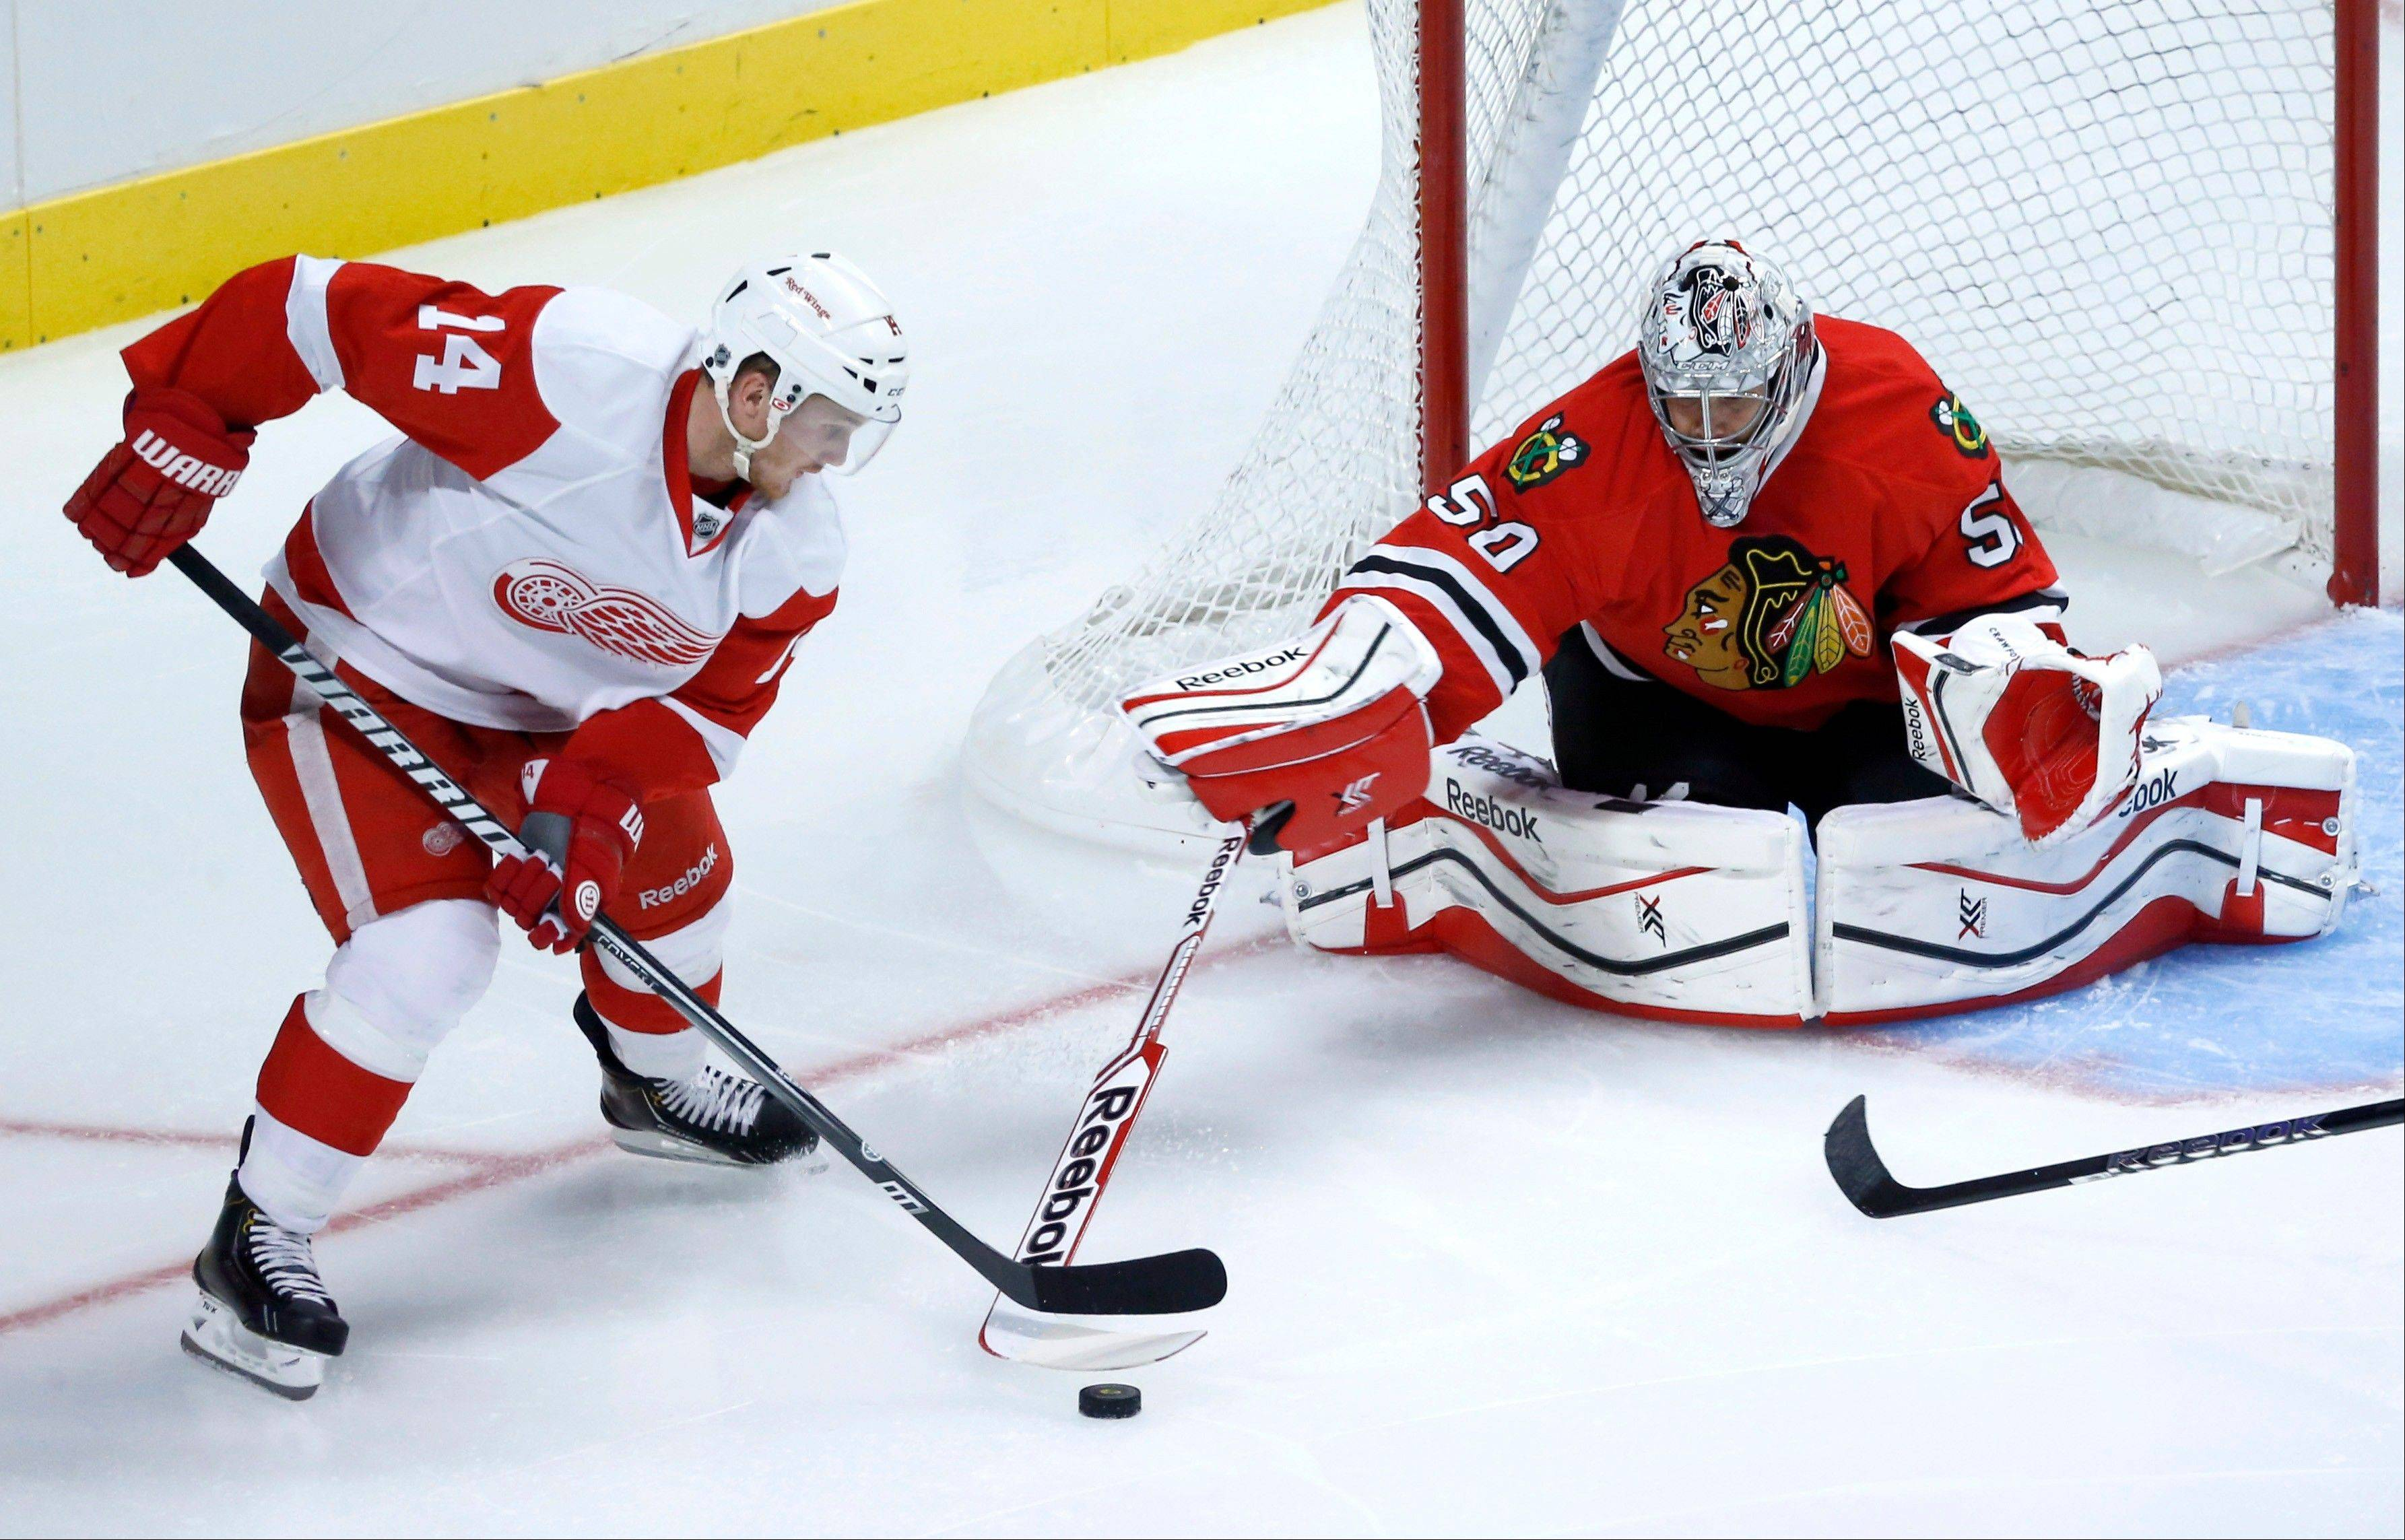 Blackhawks goalie Corey Crawford says he doesn't mind the shorter pads mandated by NFL officials in the offseason. Crawford shutout the Red Wings in the Hawks' preseason opener Tuesday.